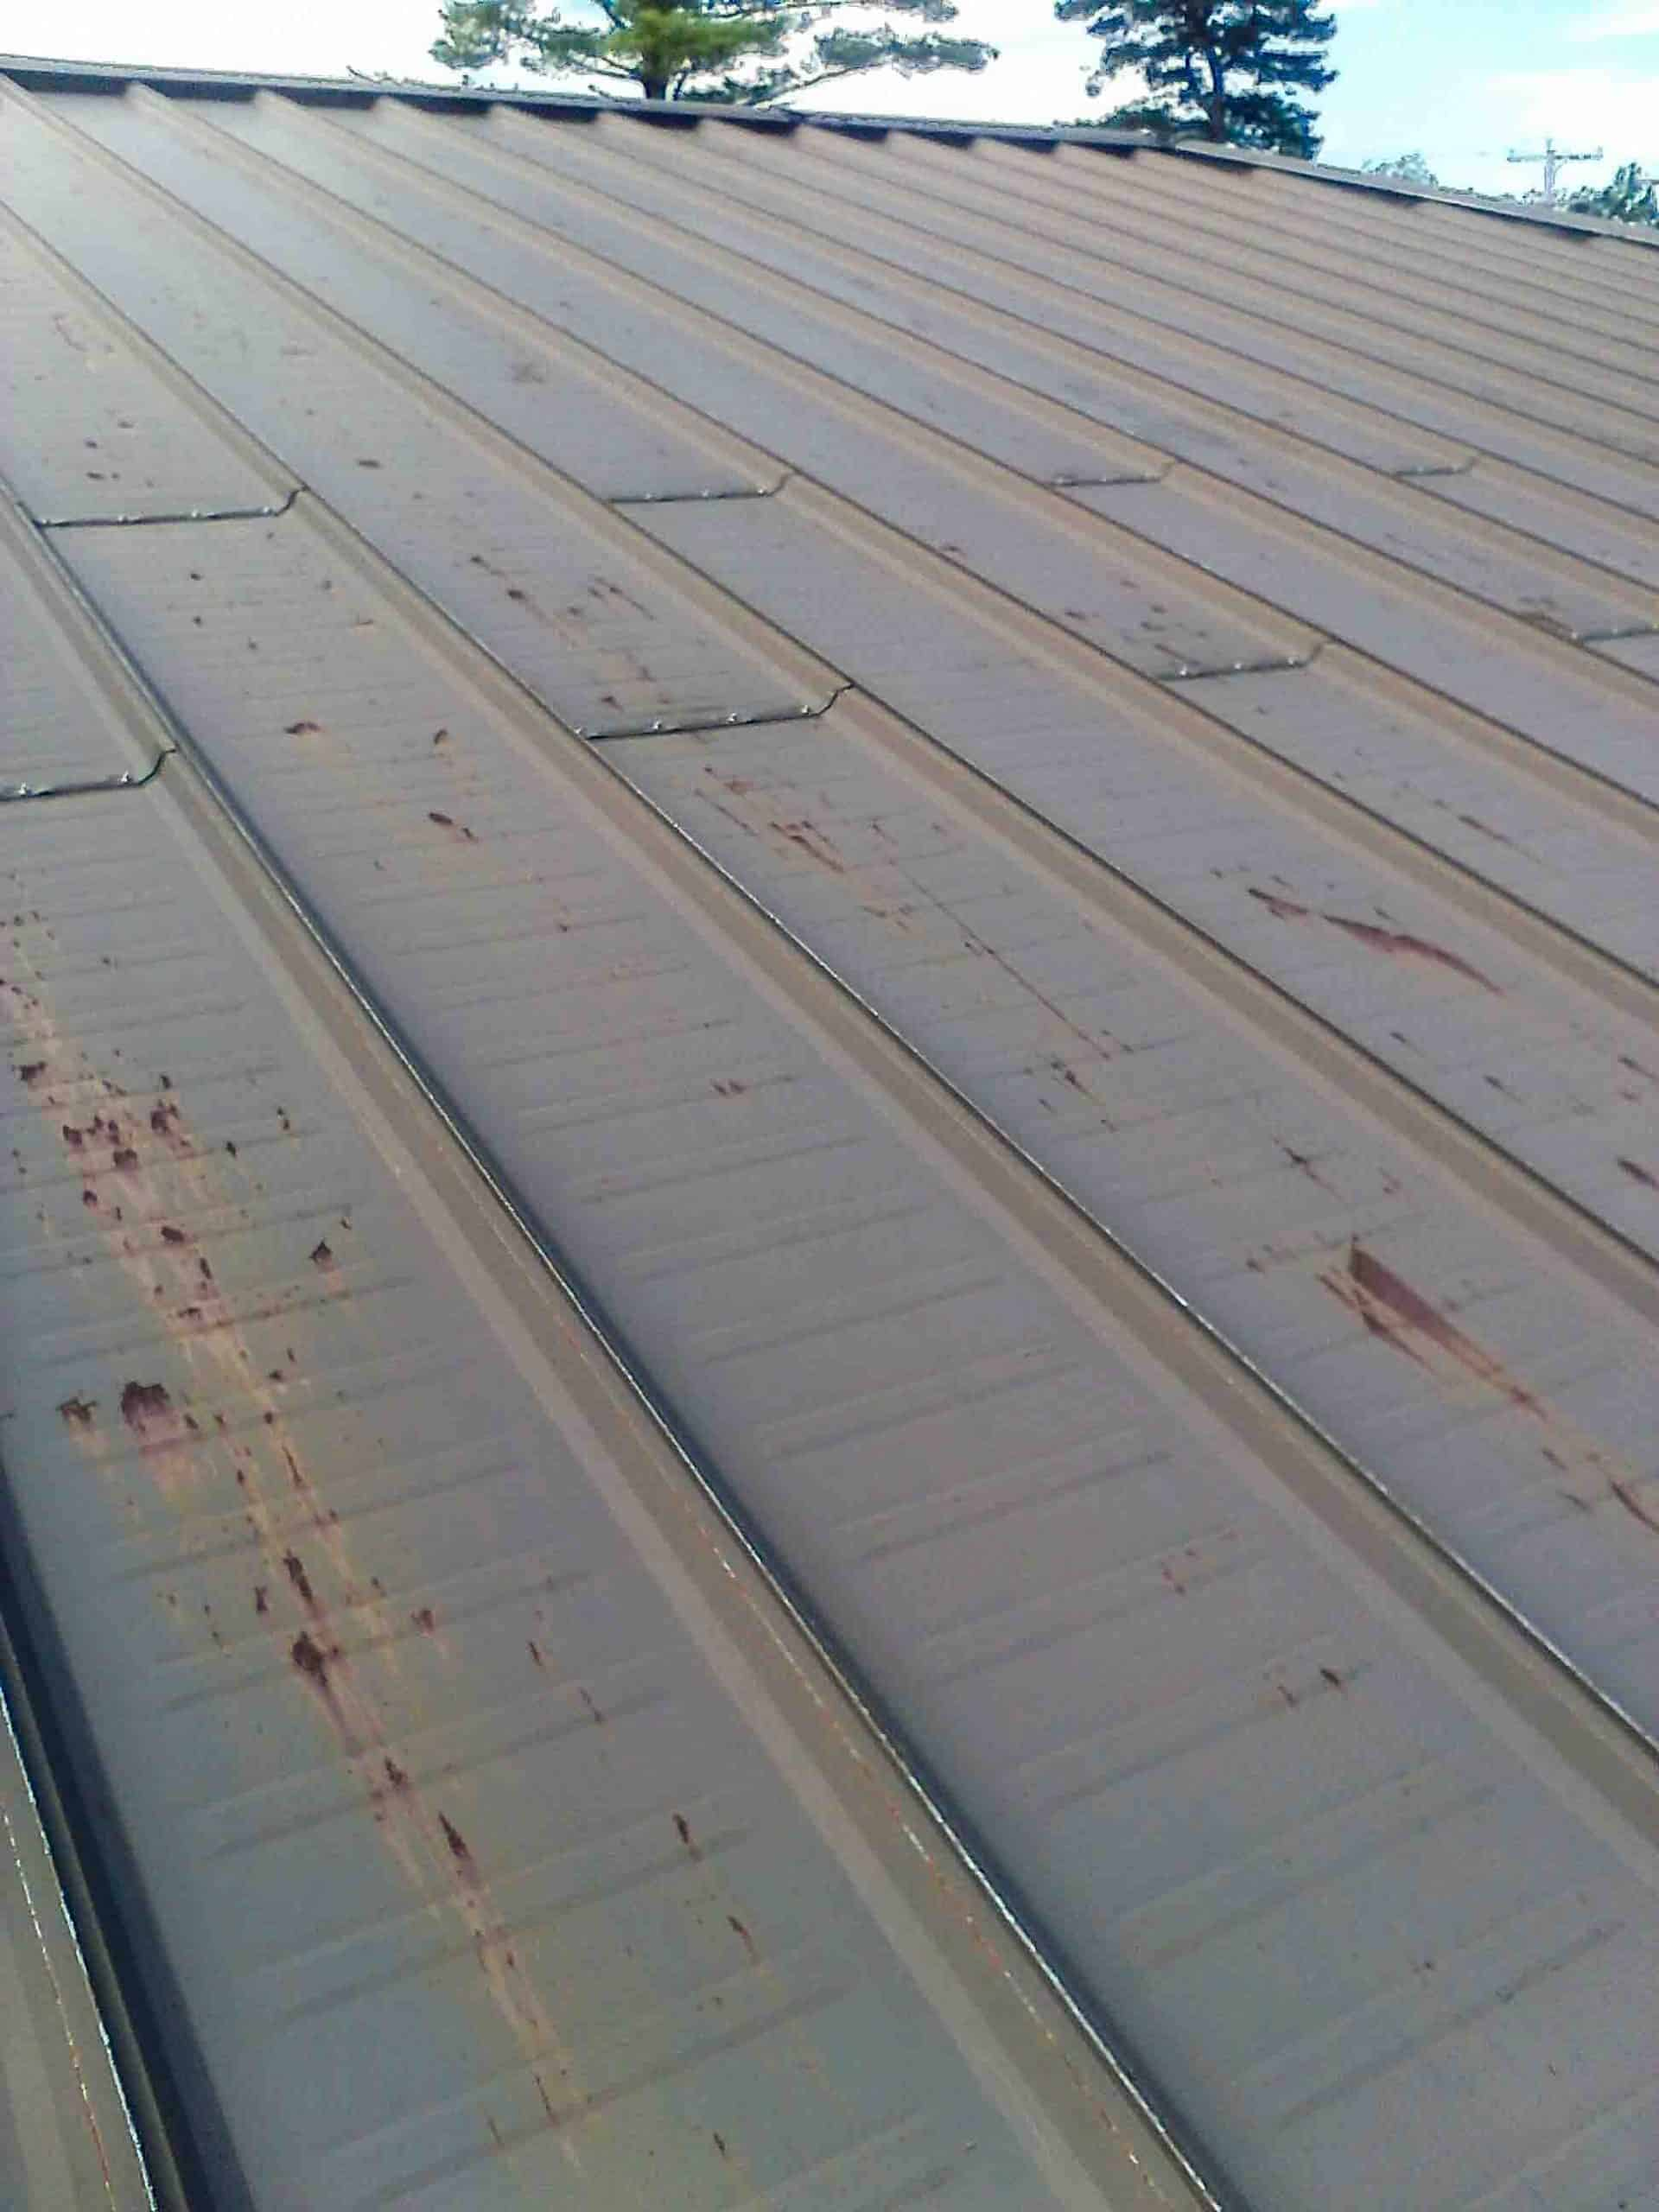 Metal Roof Paint Application - Before Rust Grip and Enamo Grip